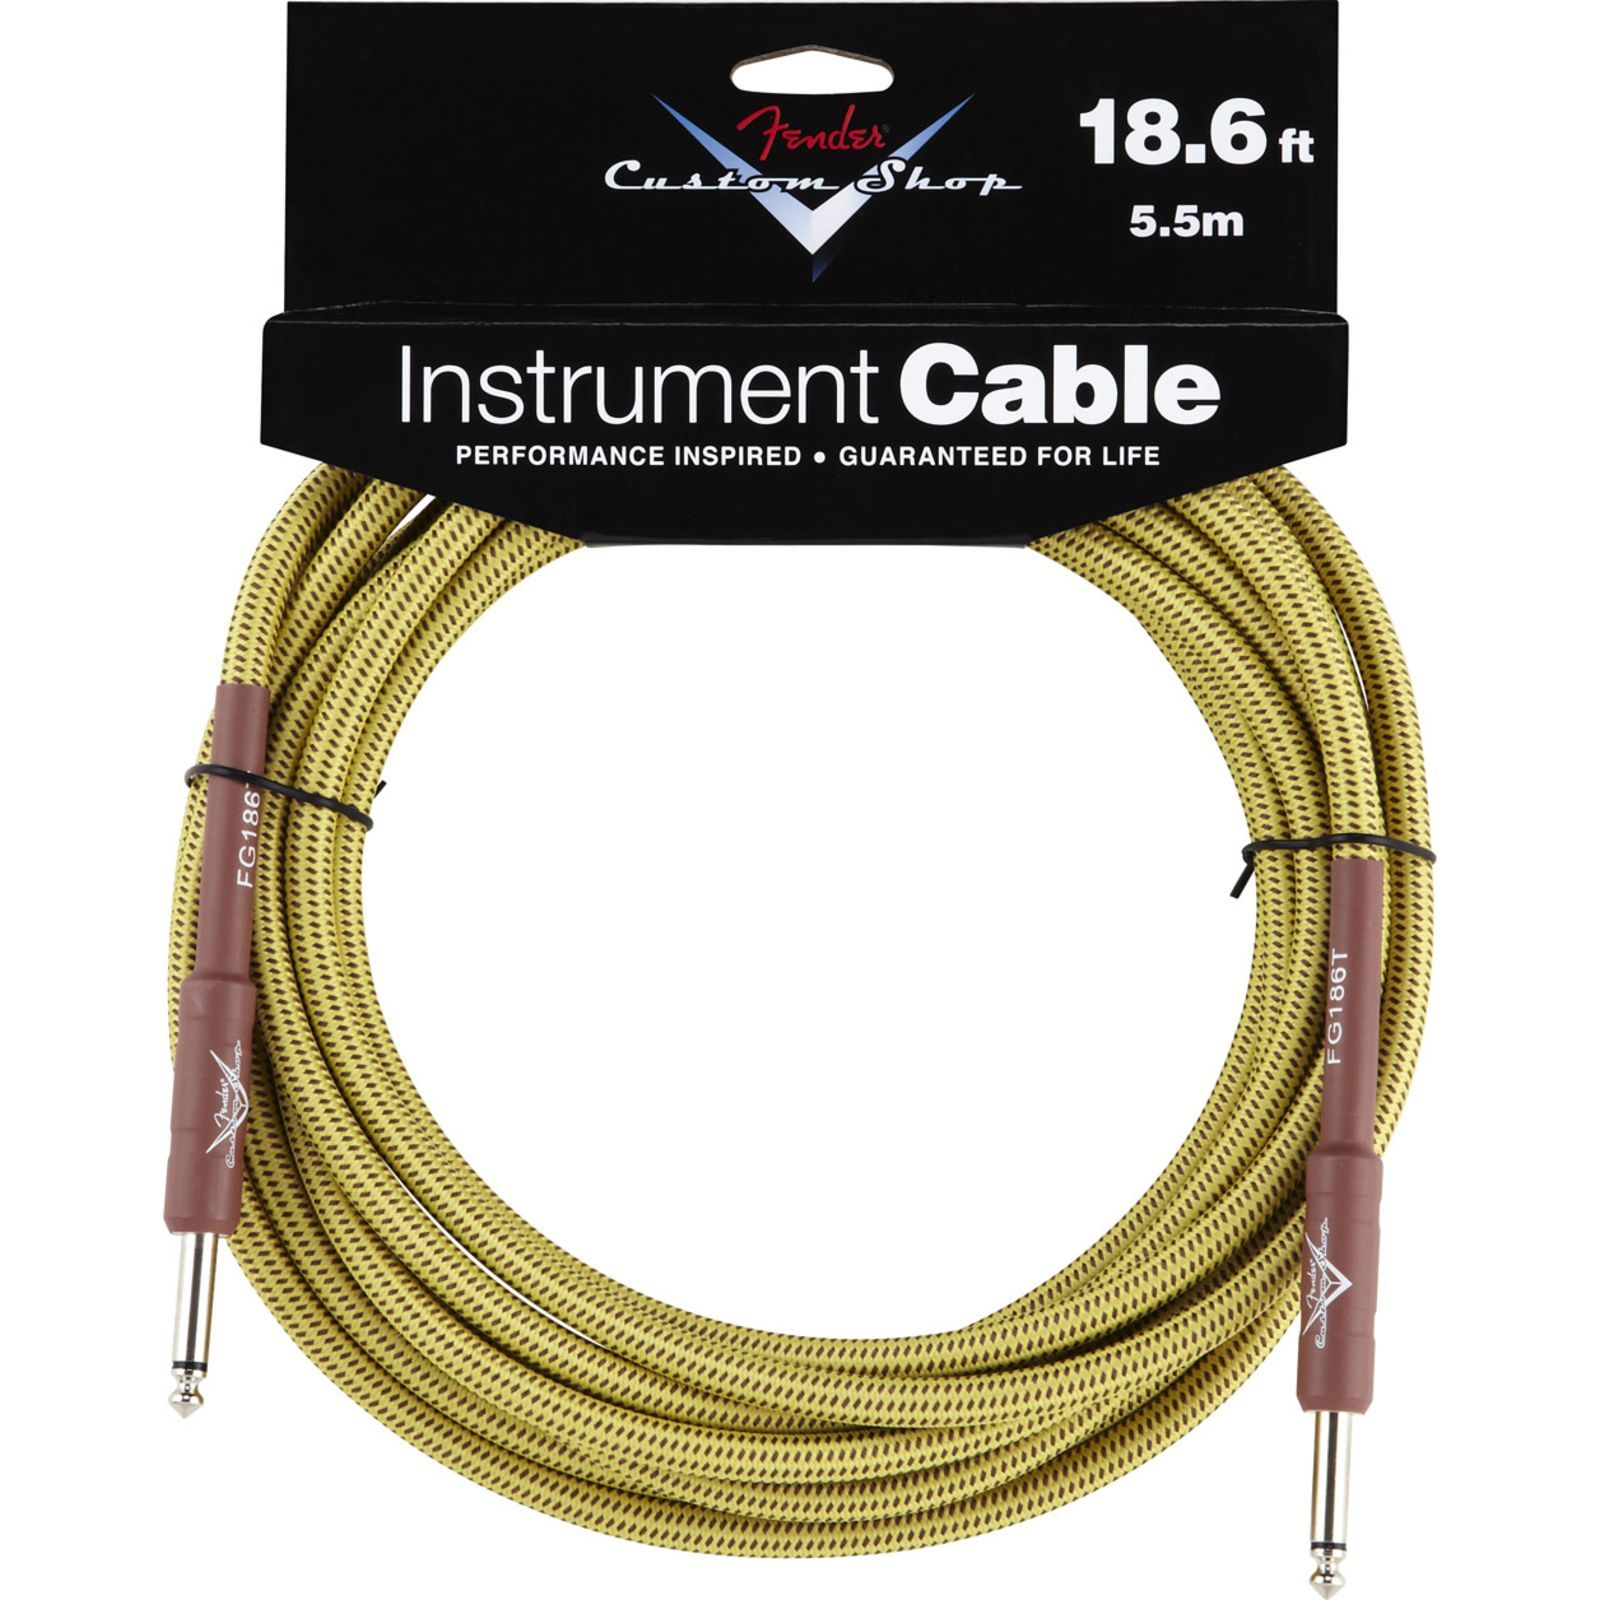 Fender Custom Shop Cable 5,5m TW Tweed, Kli/Kli Produktbild